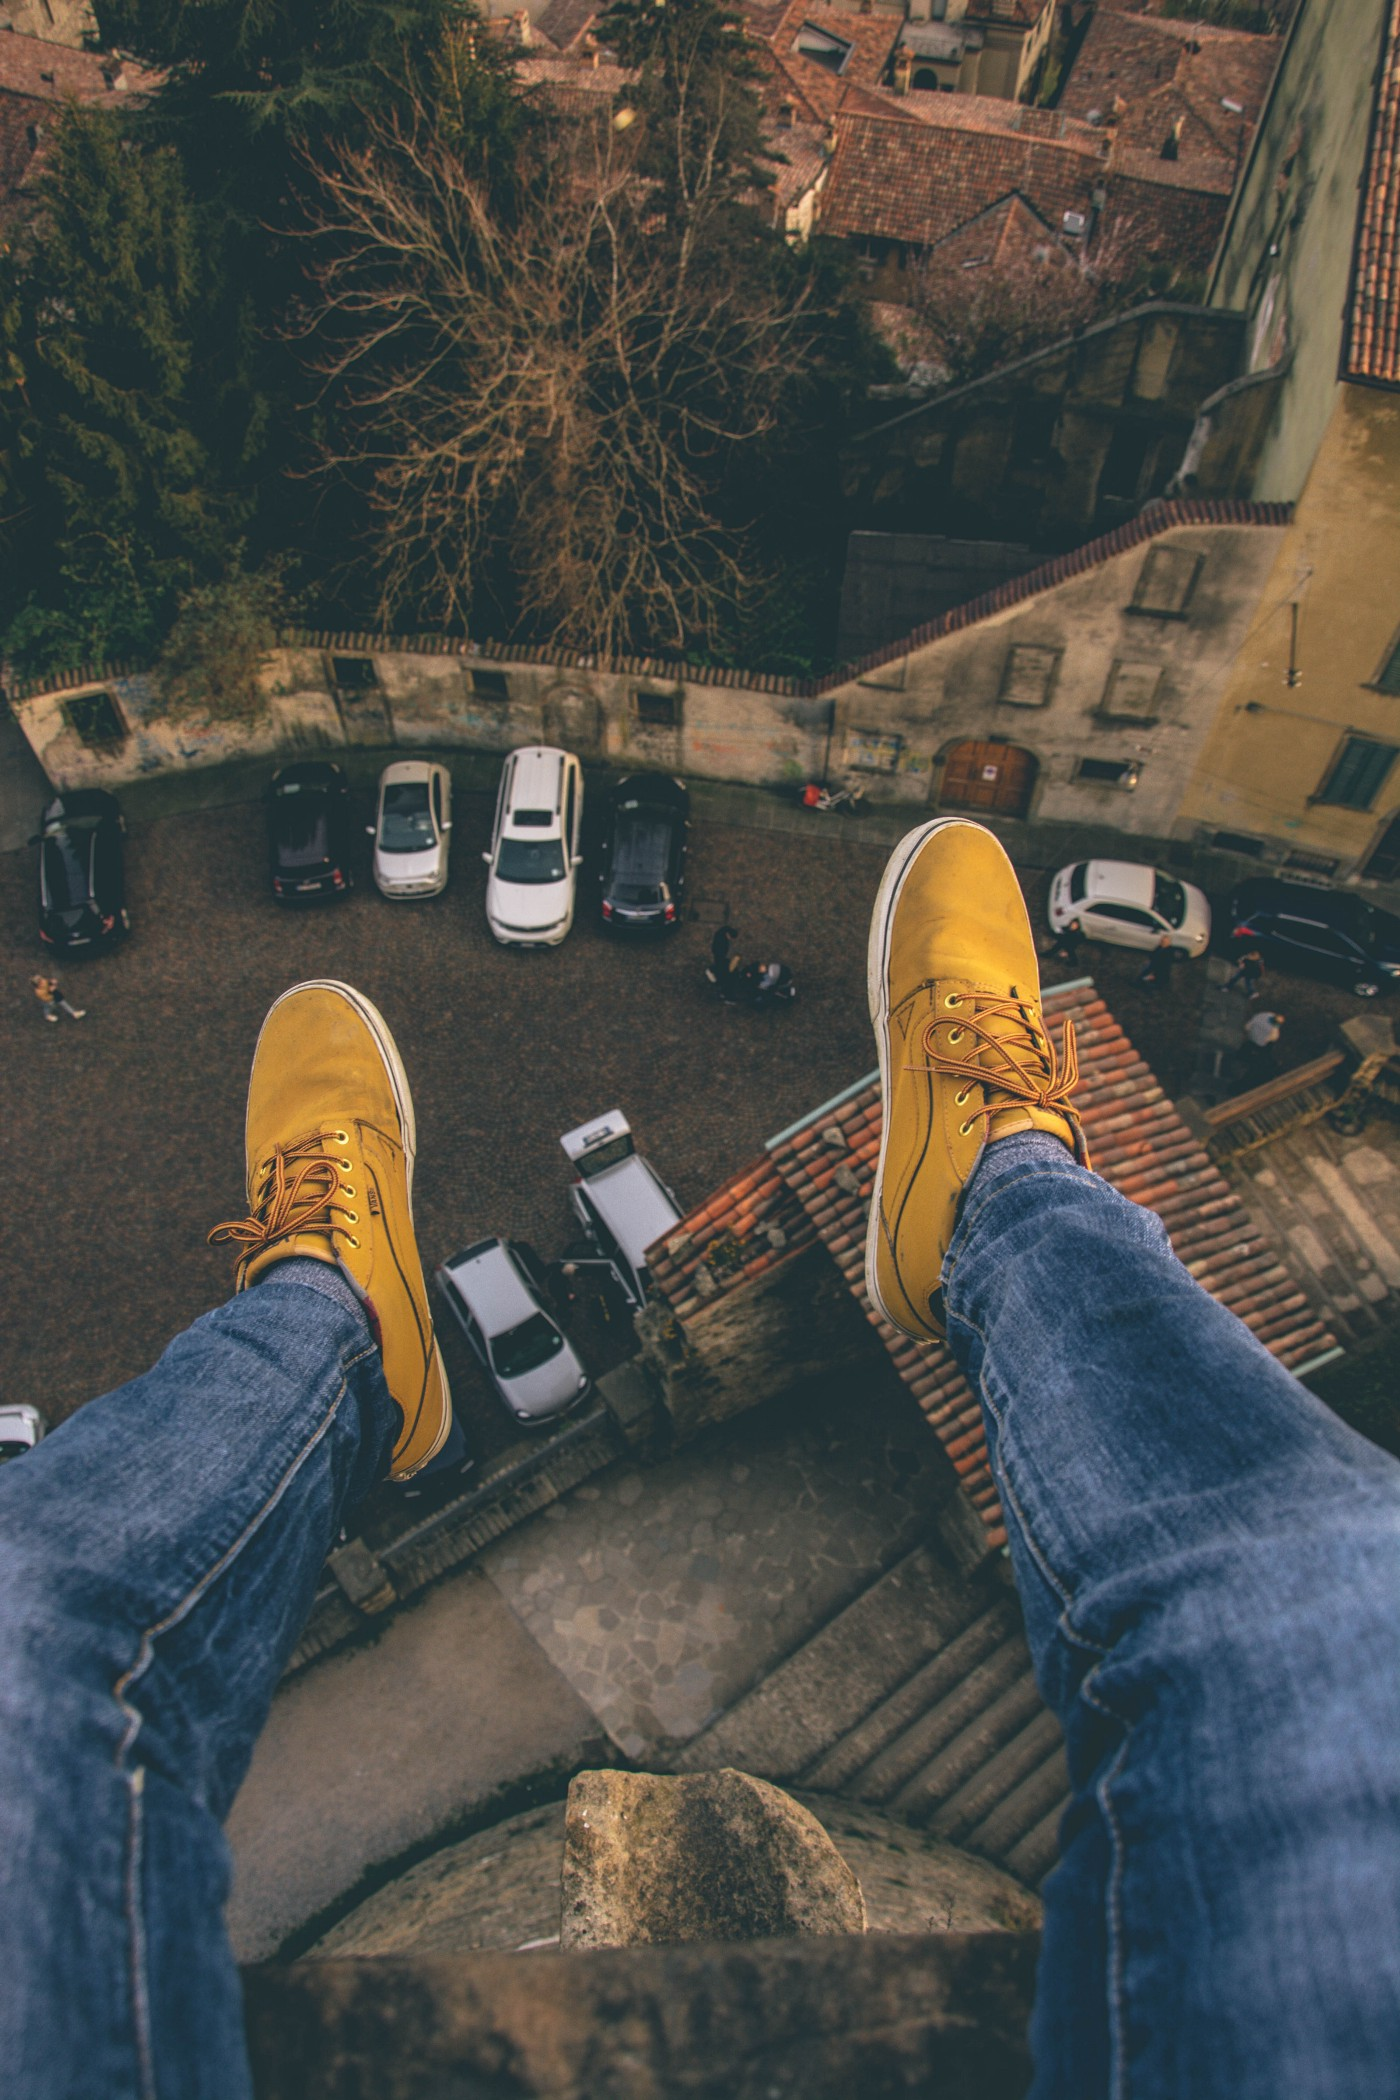 top-down view of the feet and legs of a person sitting on a rooftop overlooking a parking lot